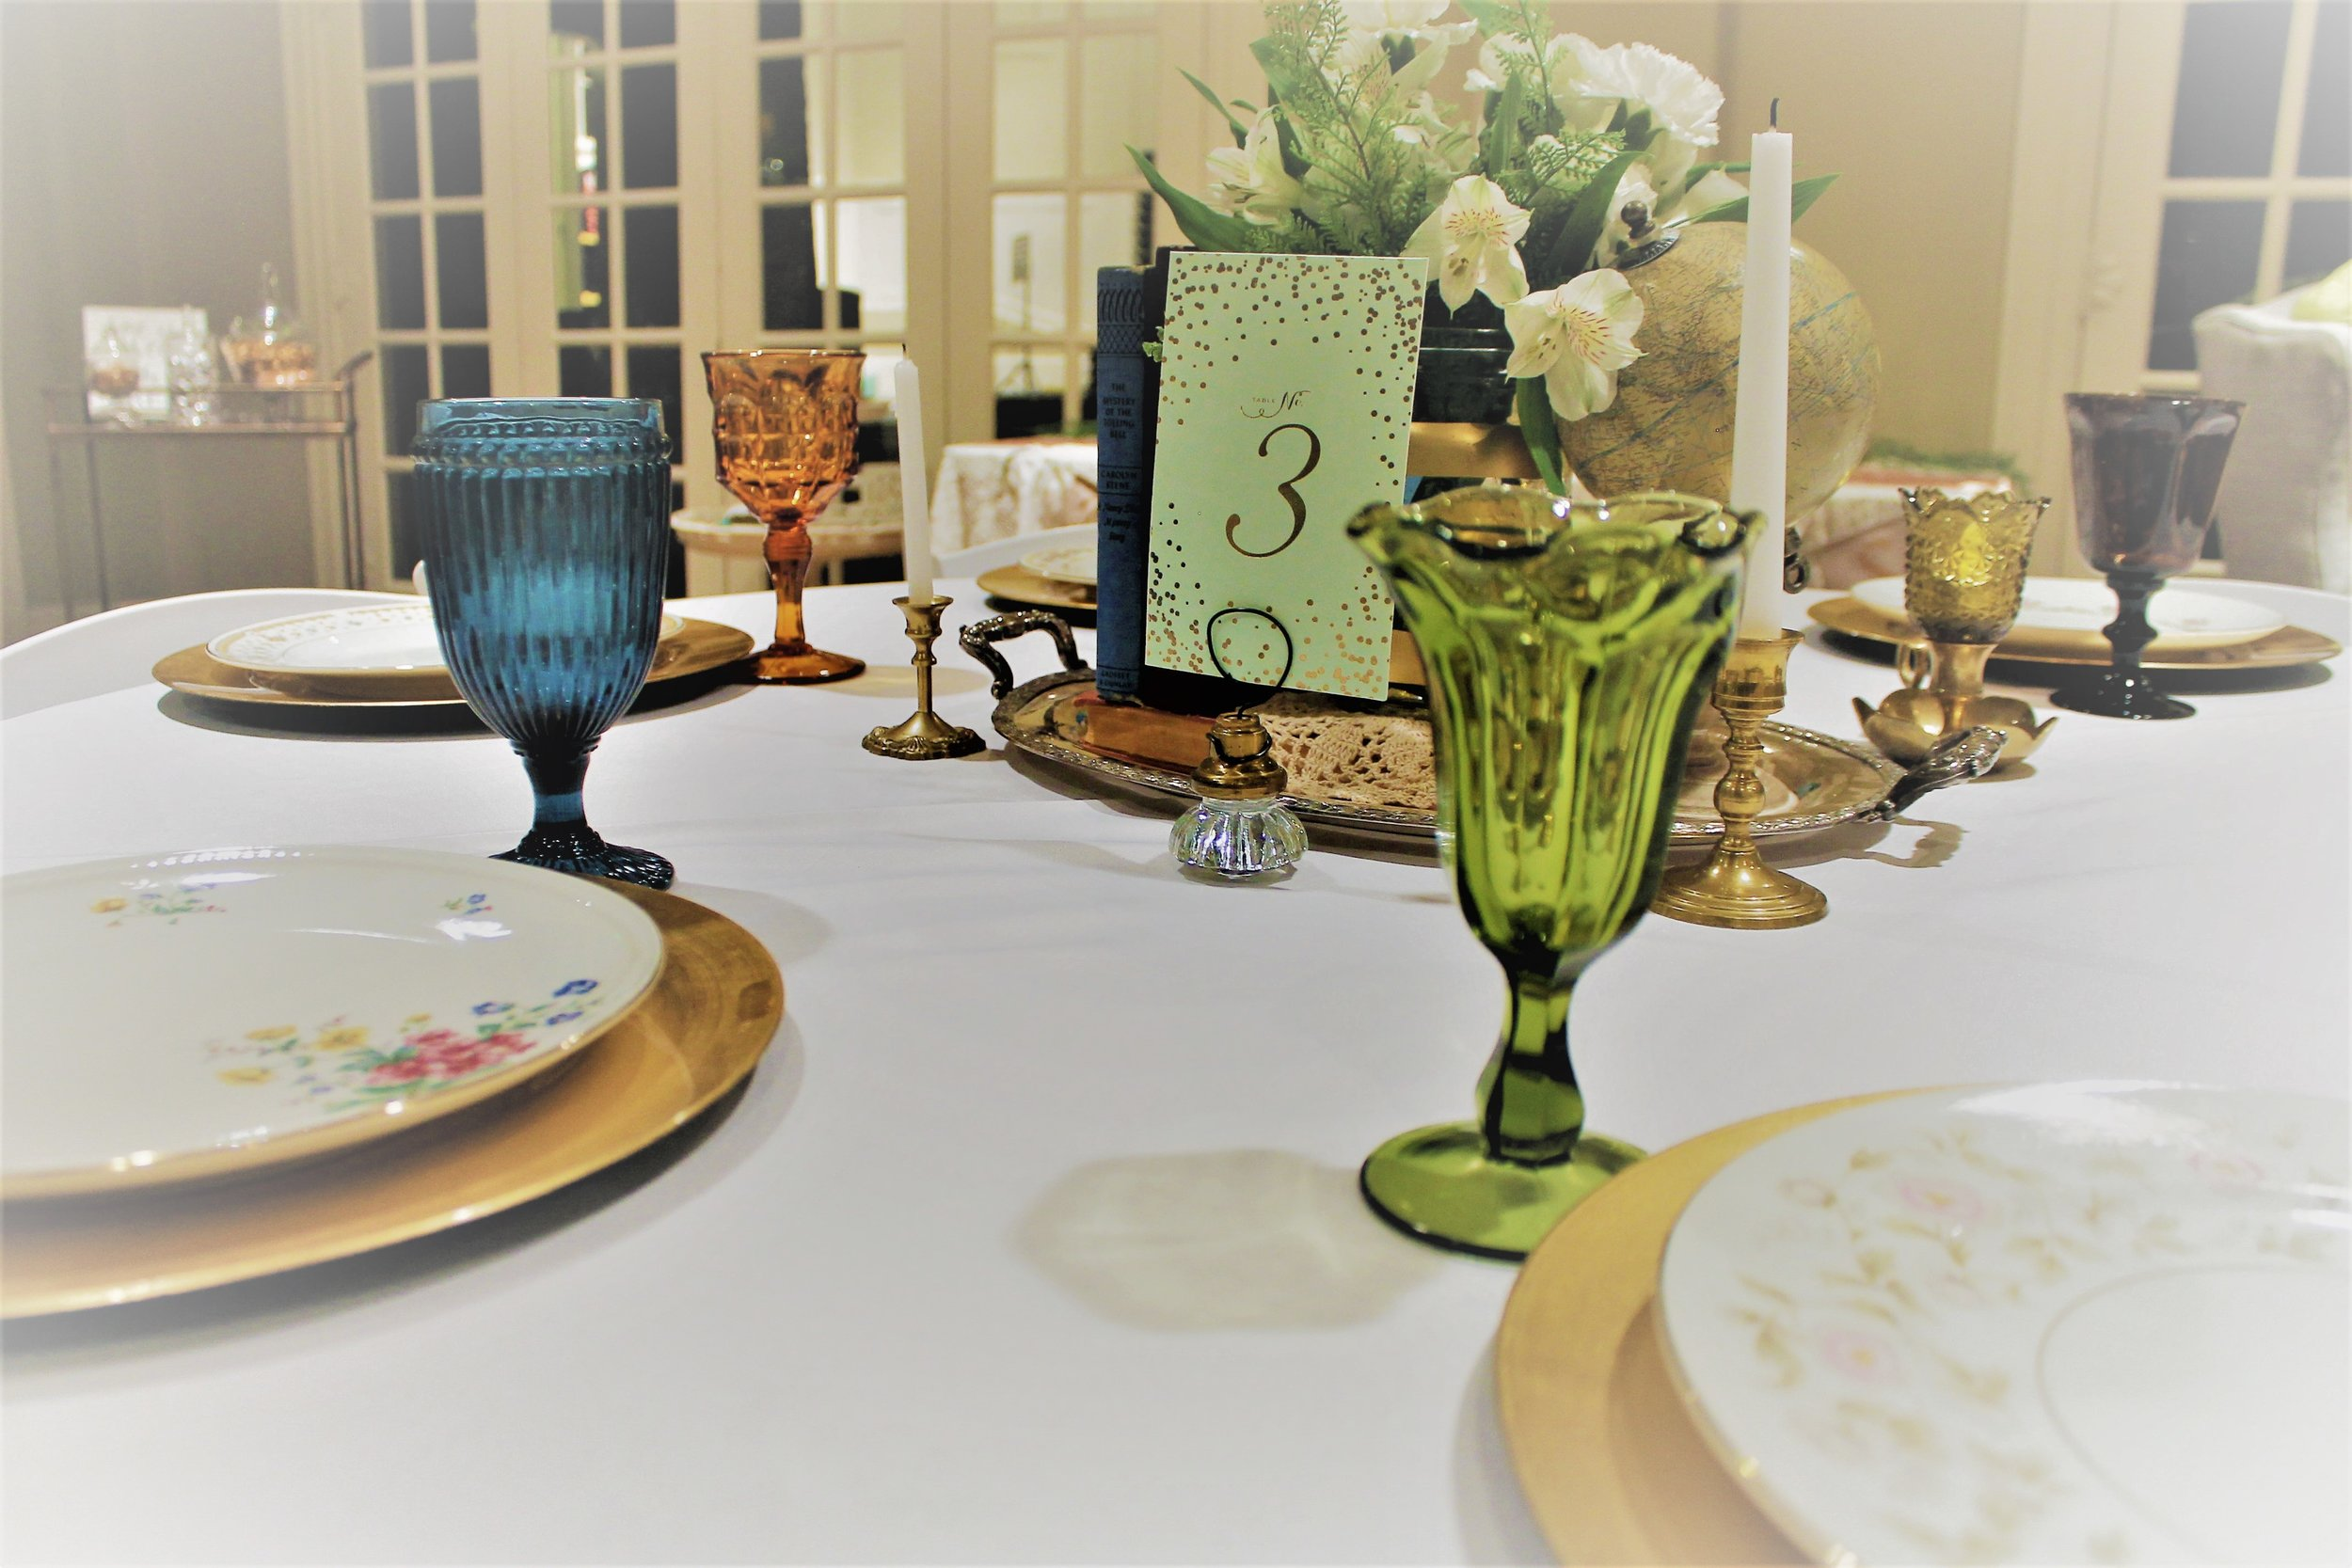 Vintage colored goblets, books, and globes